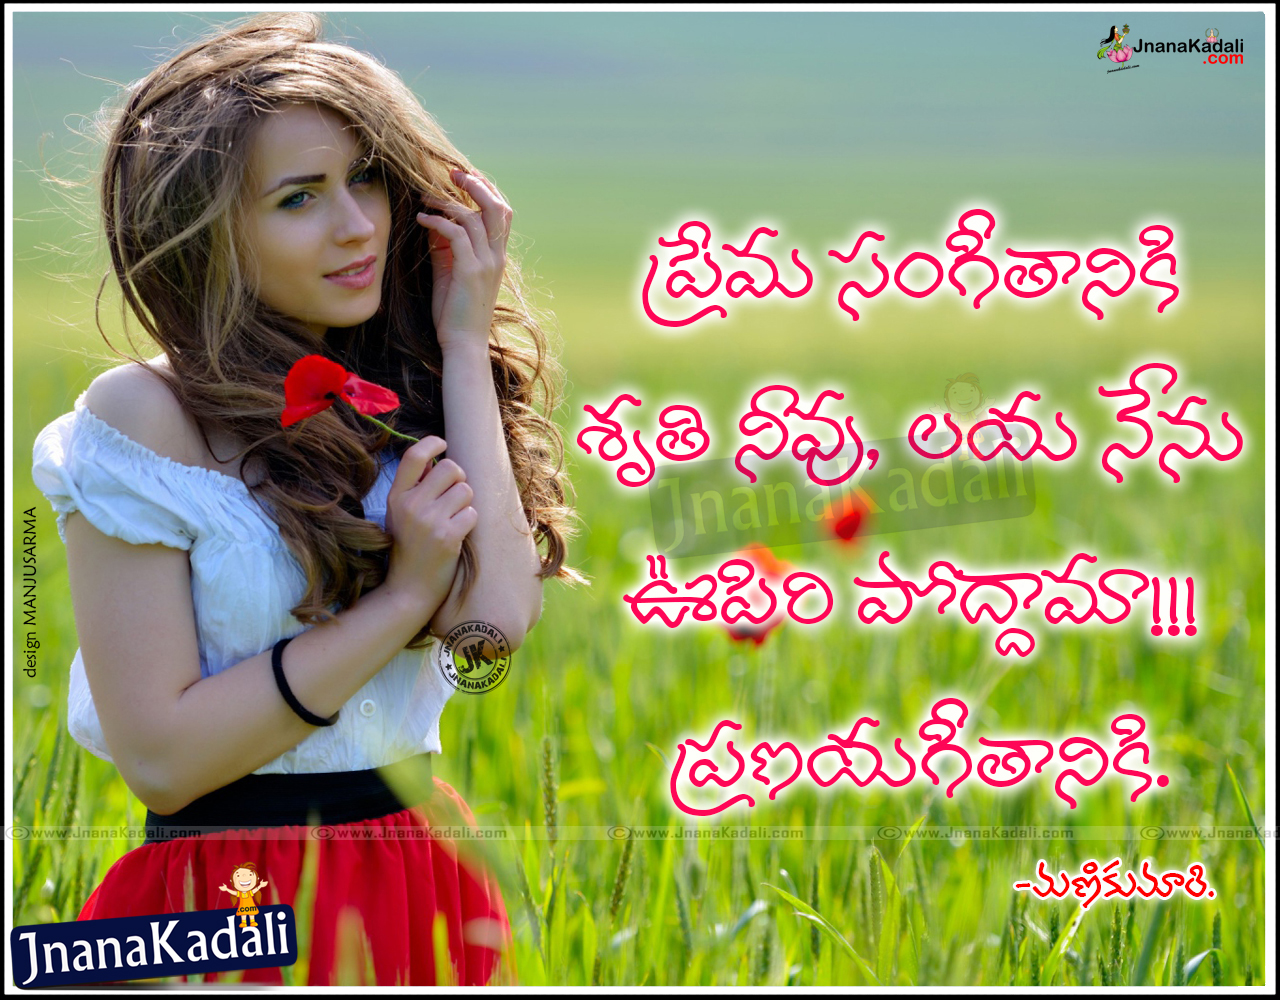 Romantic Love Quotes For Her In Telugu The Snowboarding